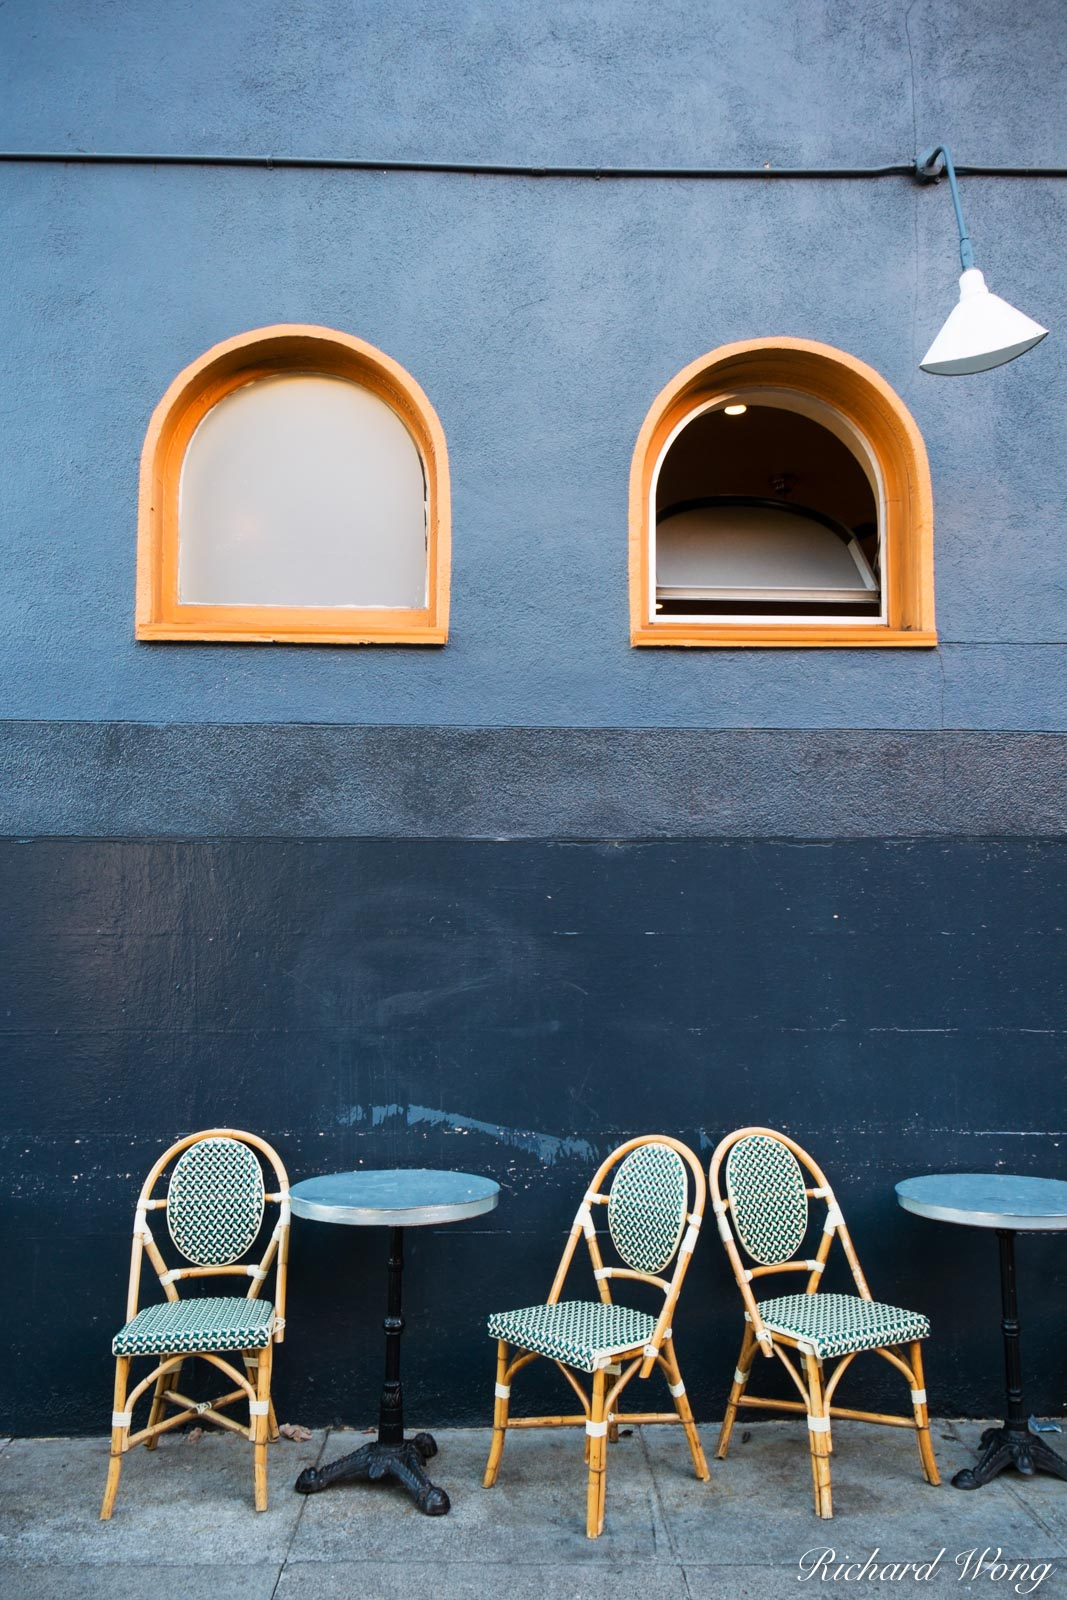 French Bakery Chairs and Tables on Sidewalk in Hayes Valley, San Francisco, California